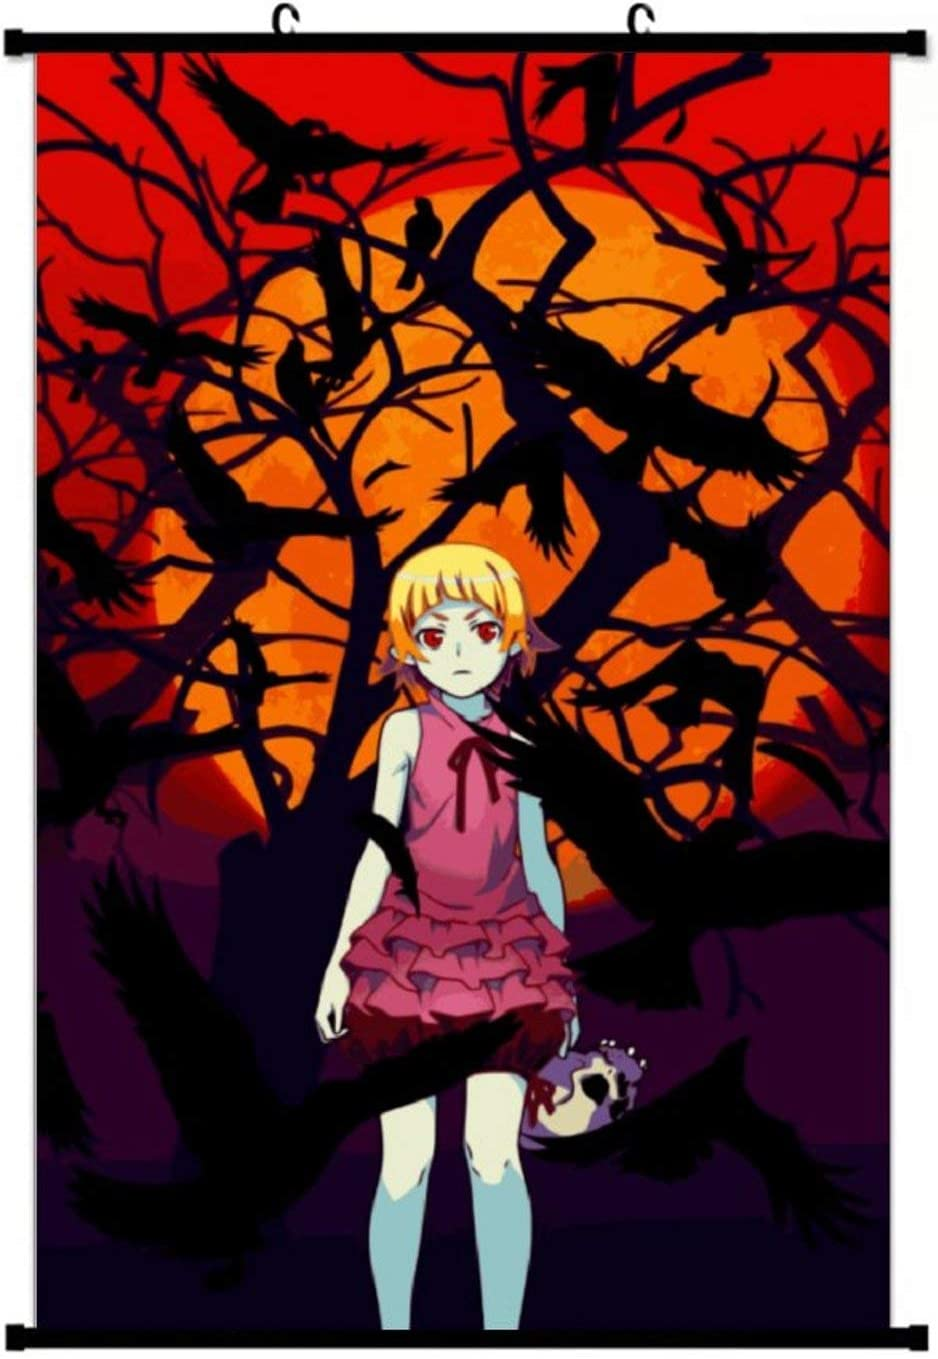 Shinobu - Kizumonogatari Wall Scroll Poster Home Decor Artwork Hanging Painting Art Print Painting for Living Room Office Fans Gift 20x28 Inch